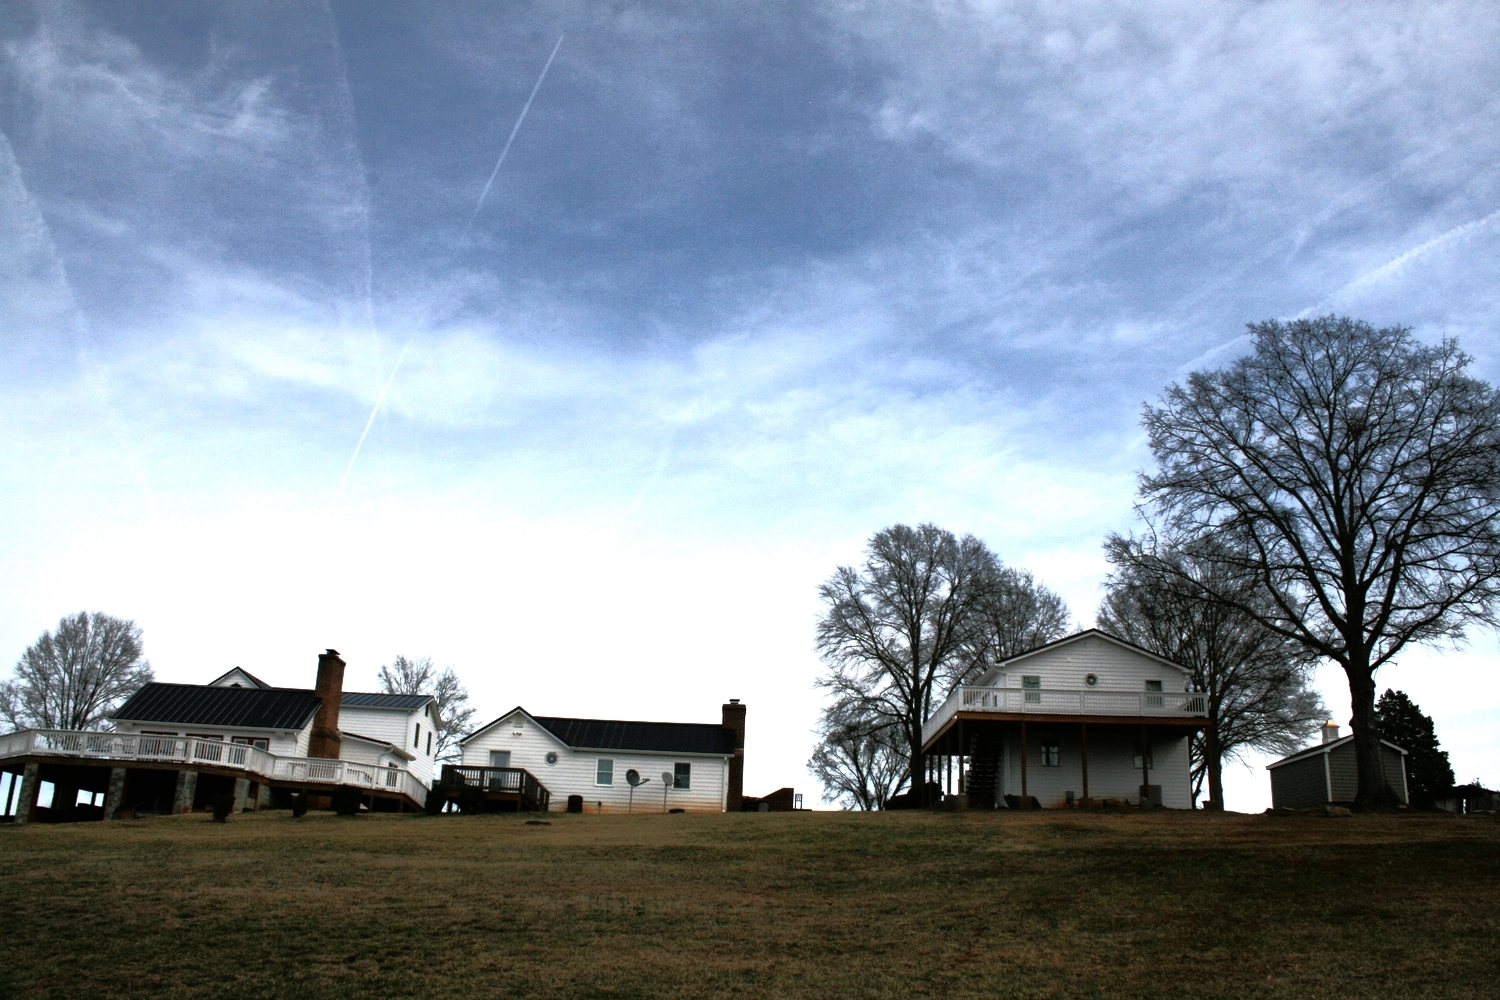 All three structures from behind. The Overlook is to the far right, the Tenant House is in the middle, and the Lodge is on the left.